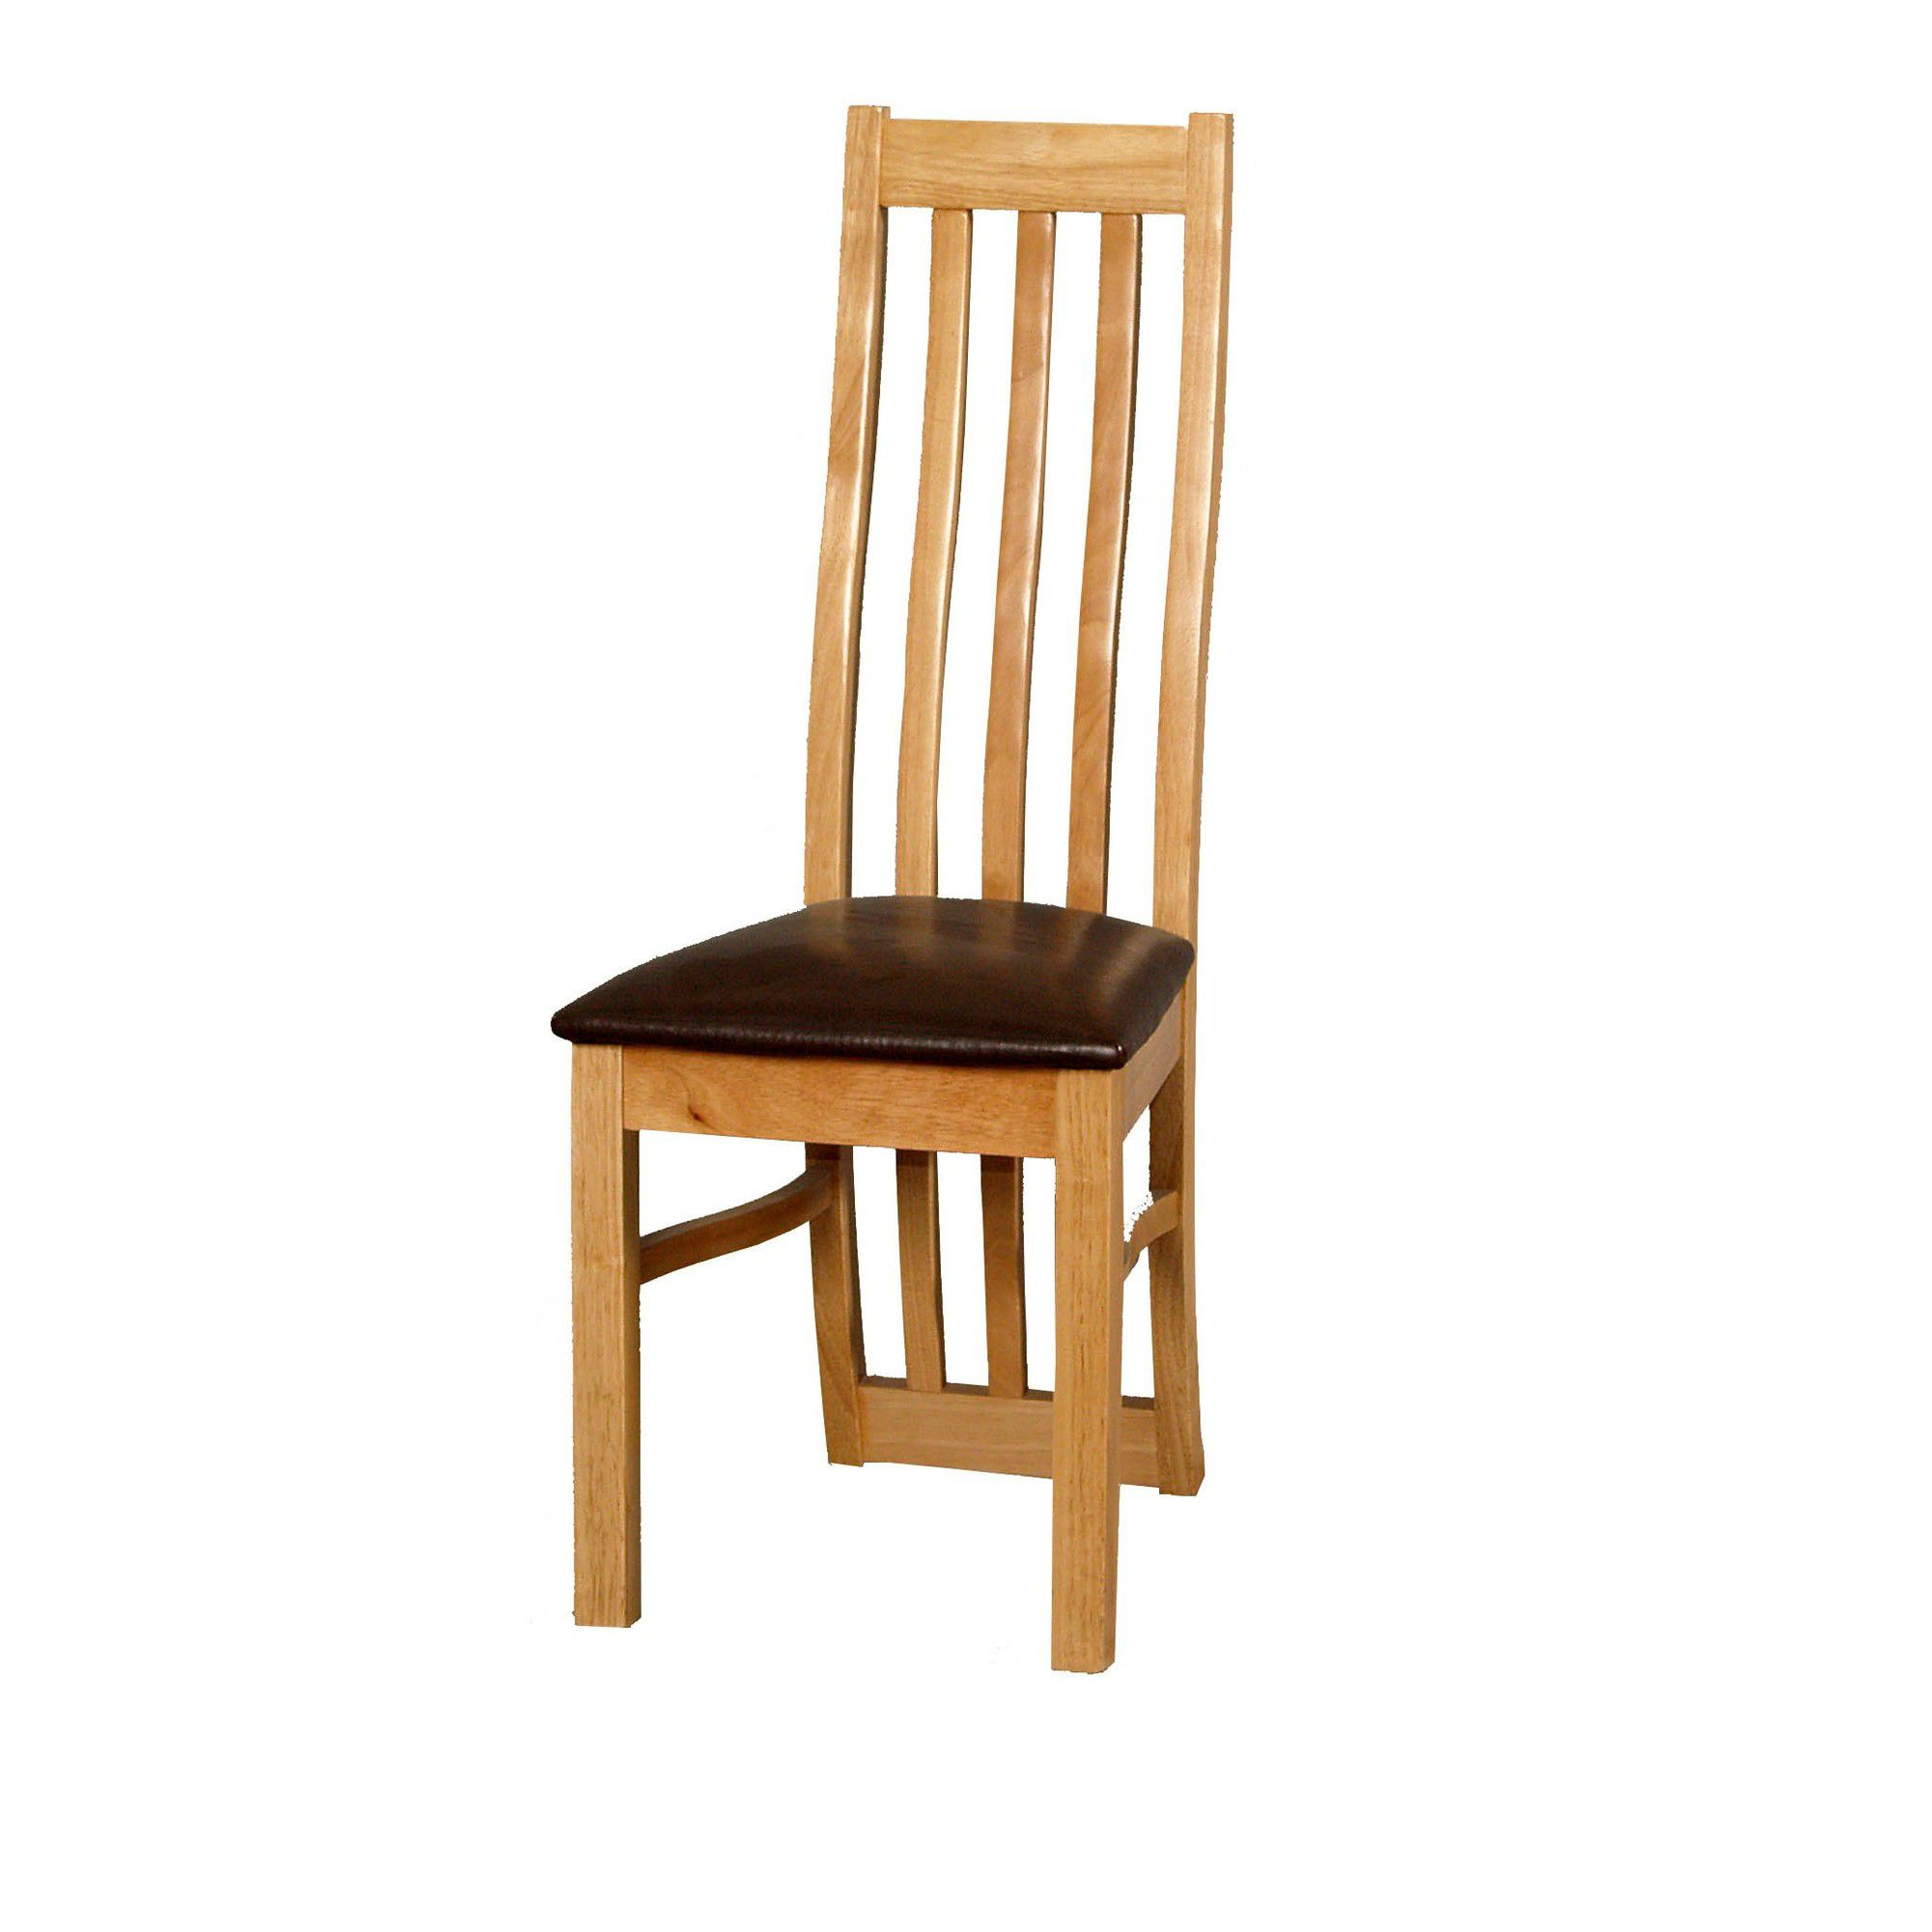 Furniture Link Eve Dining Chair in Natural Oak (Set of 2)